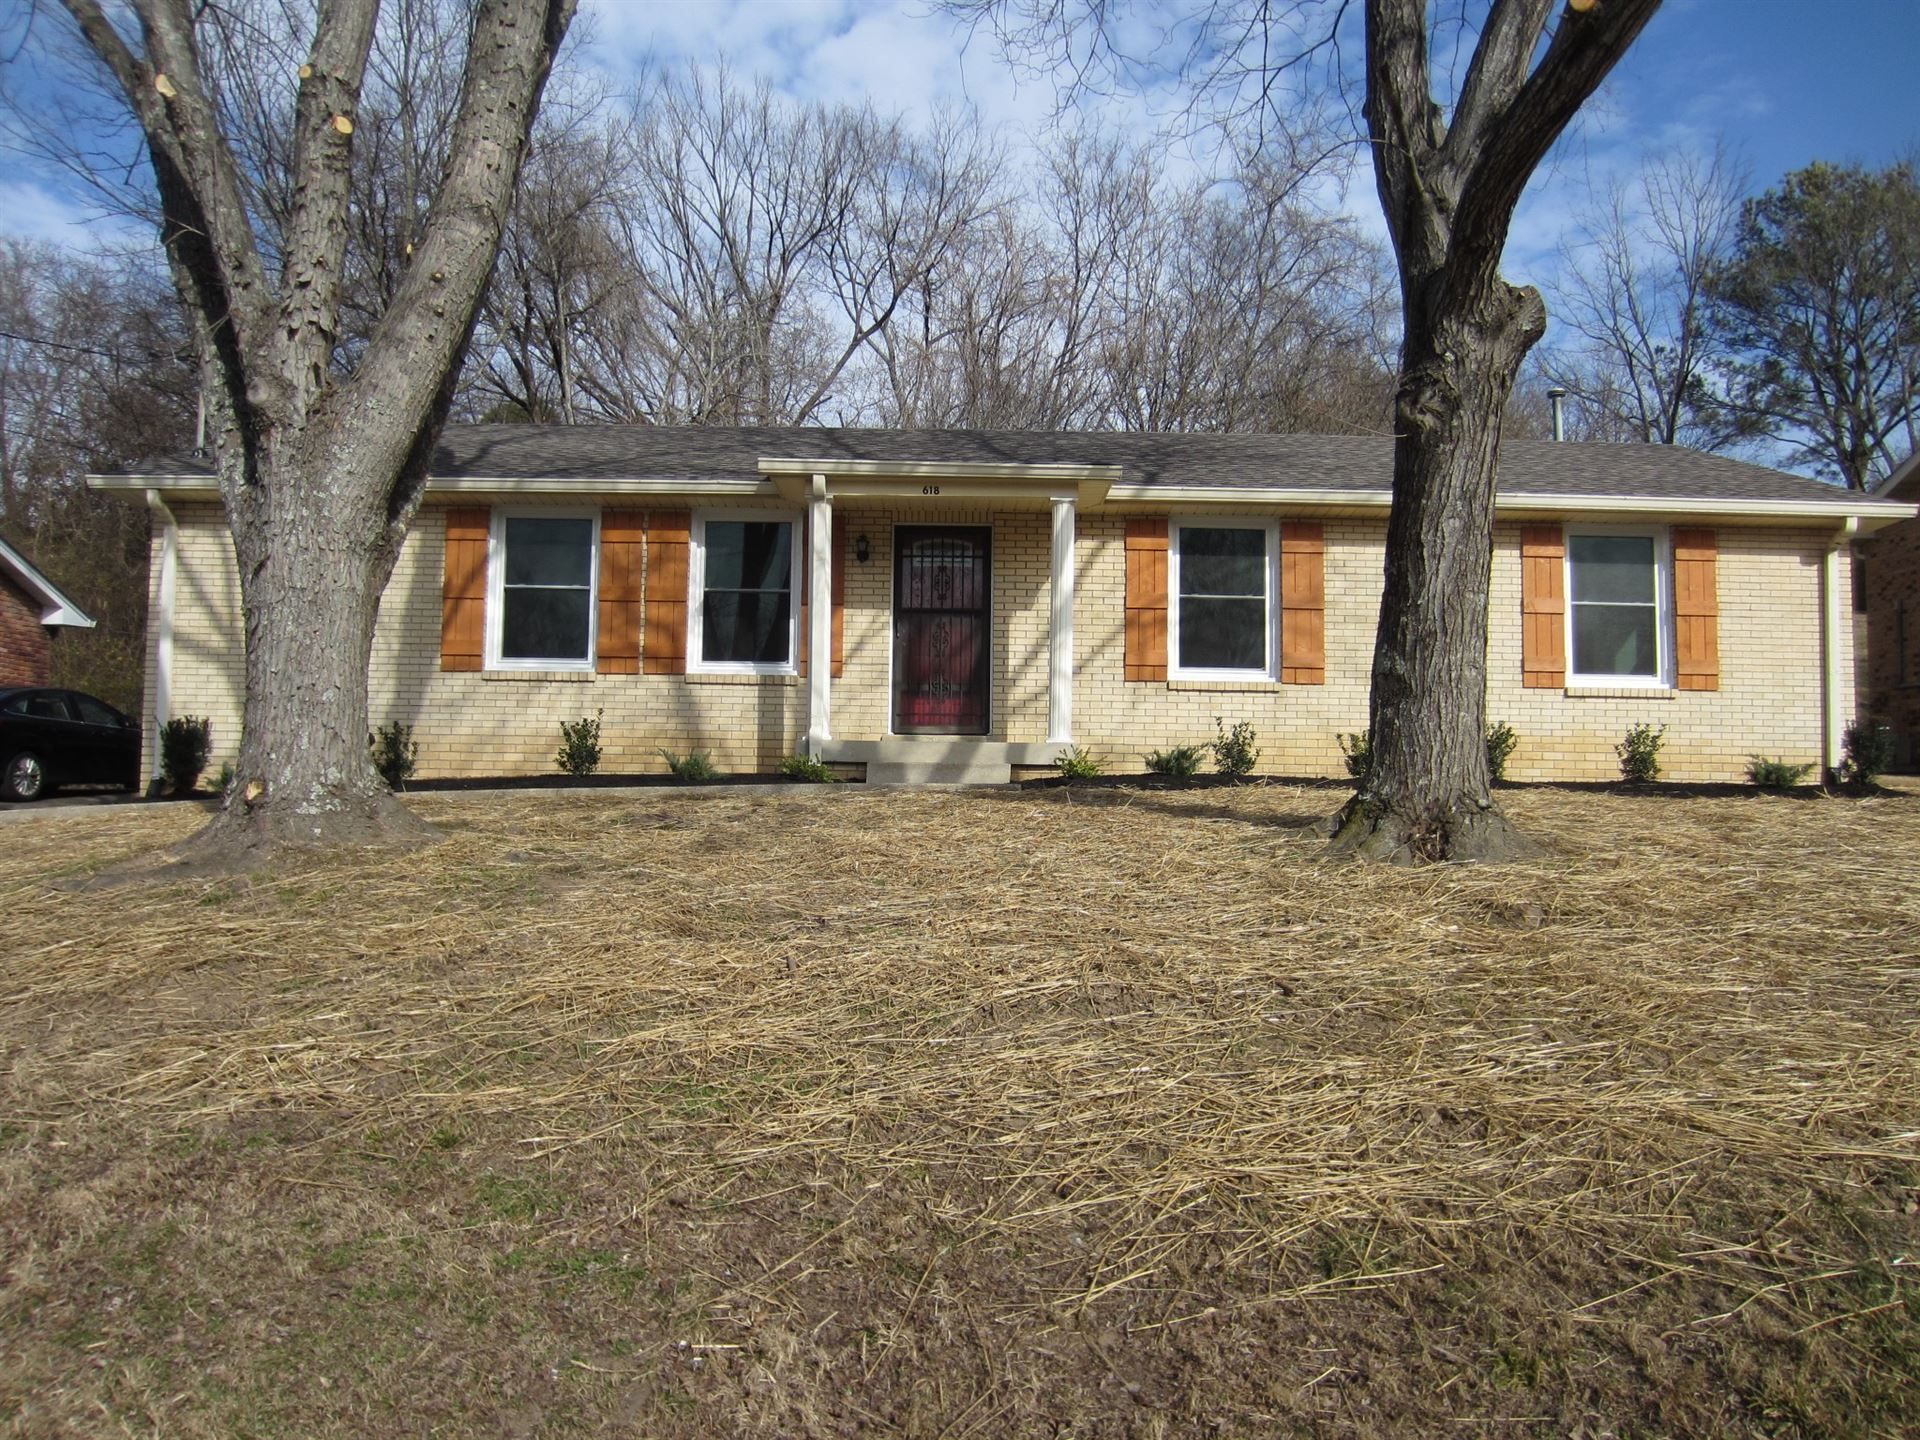 618 Huntington Pkwy, Nashville, TN 37211 - MLS#: 2222932